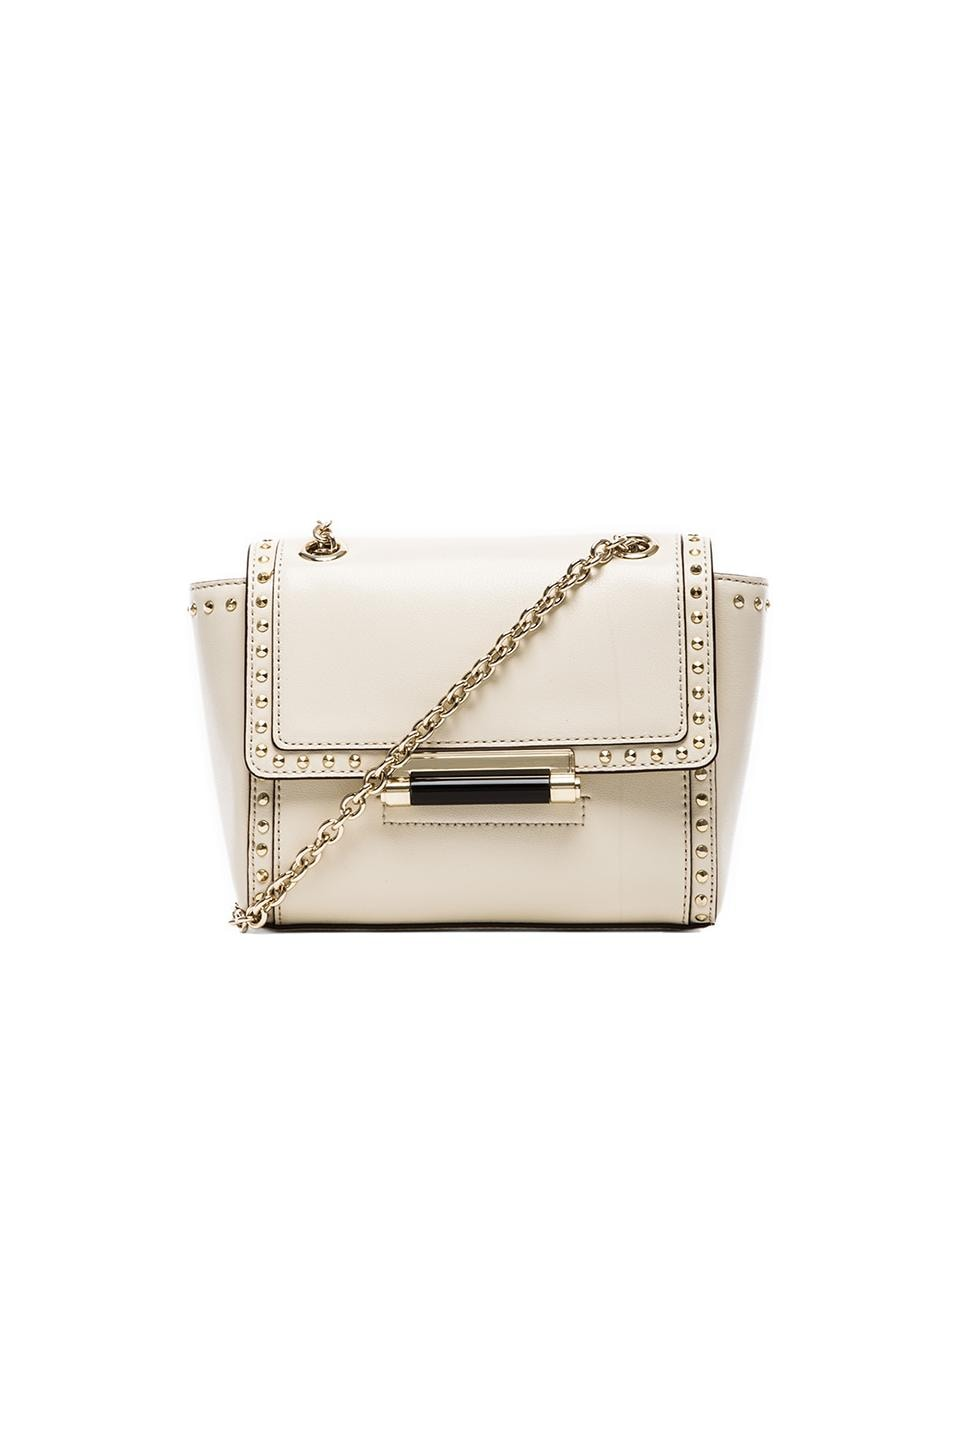 Diane von Furstenberg Mini Faceted Stud Leather Bag in Parchment